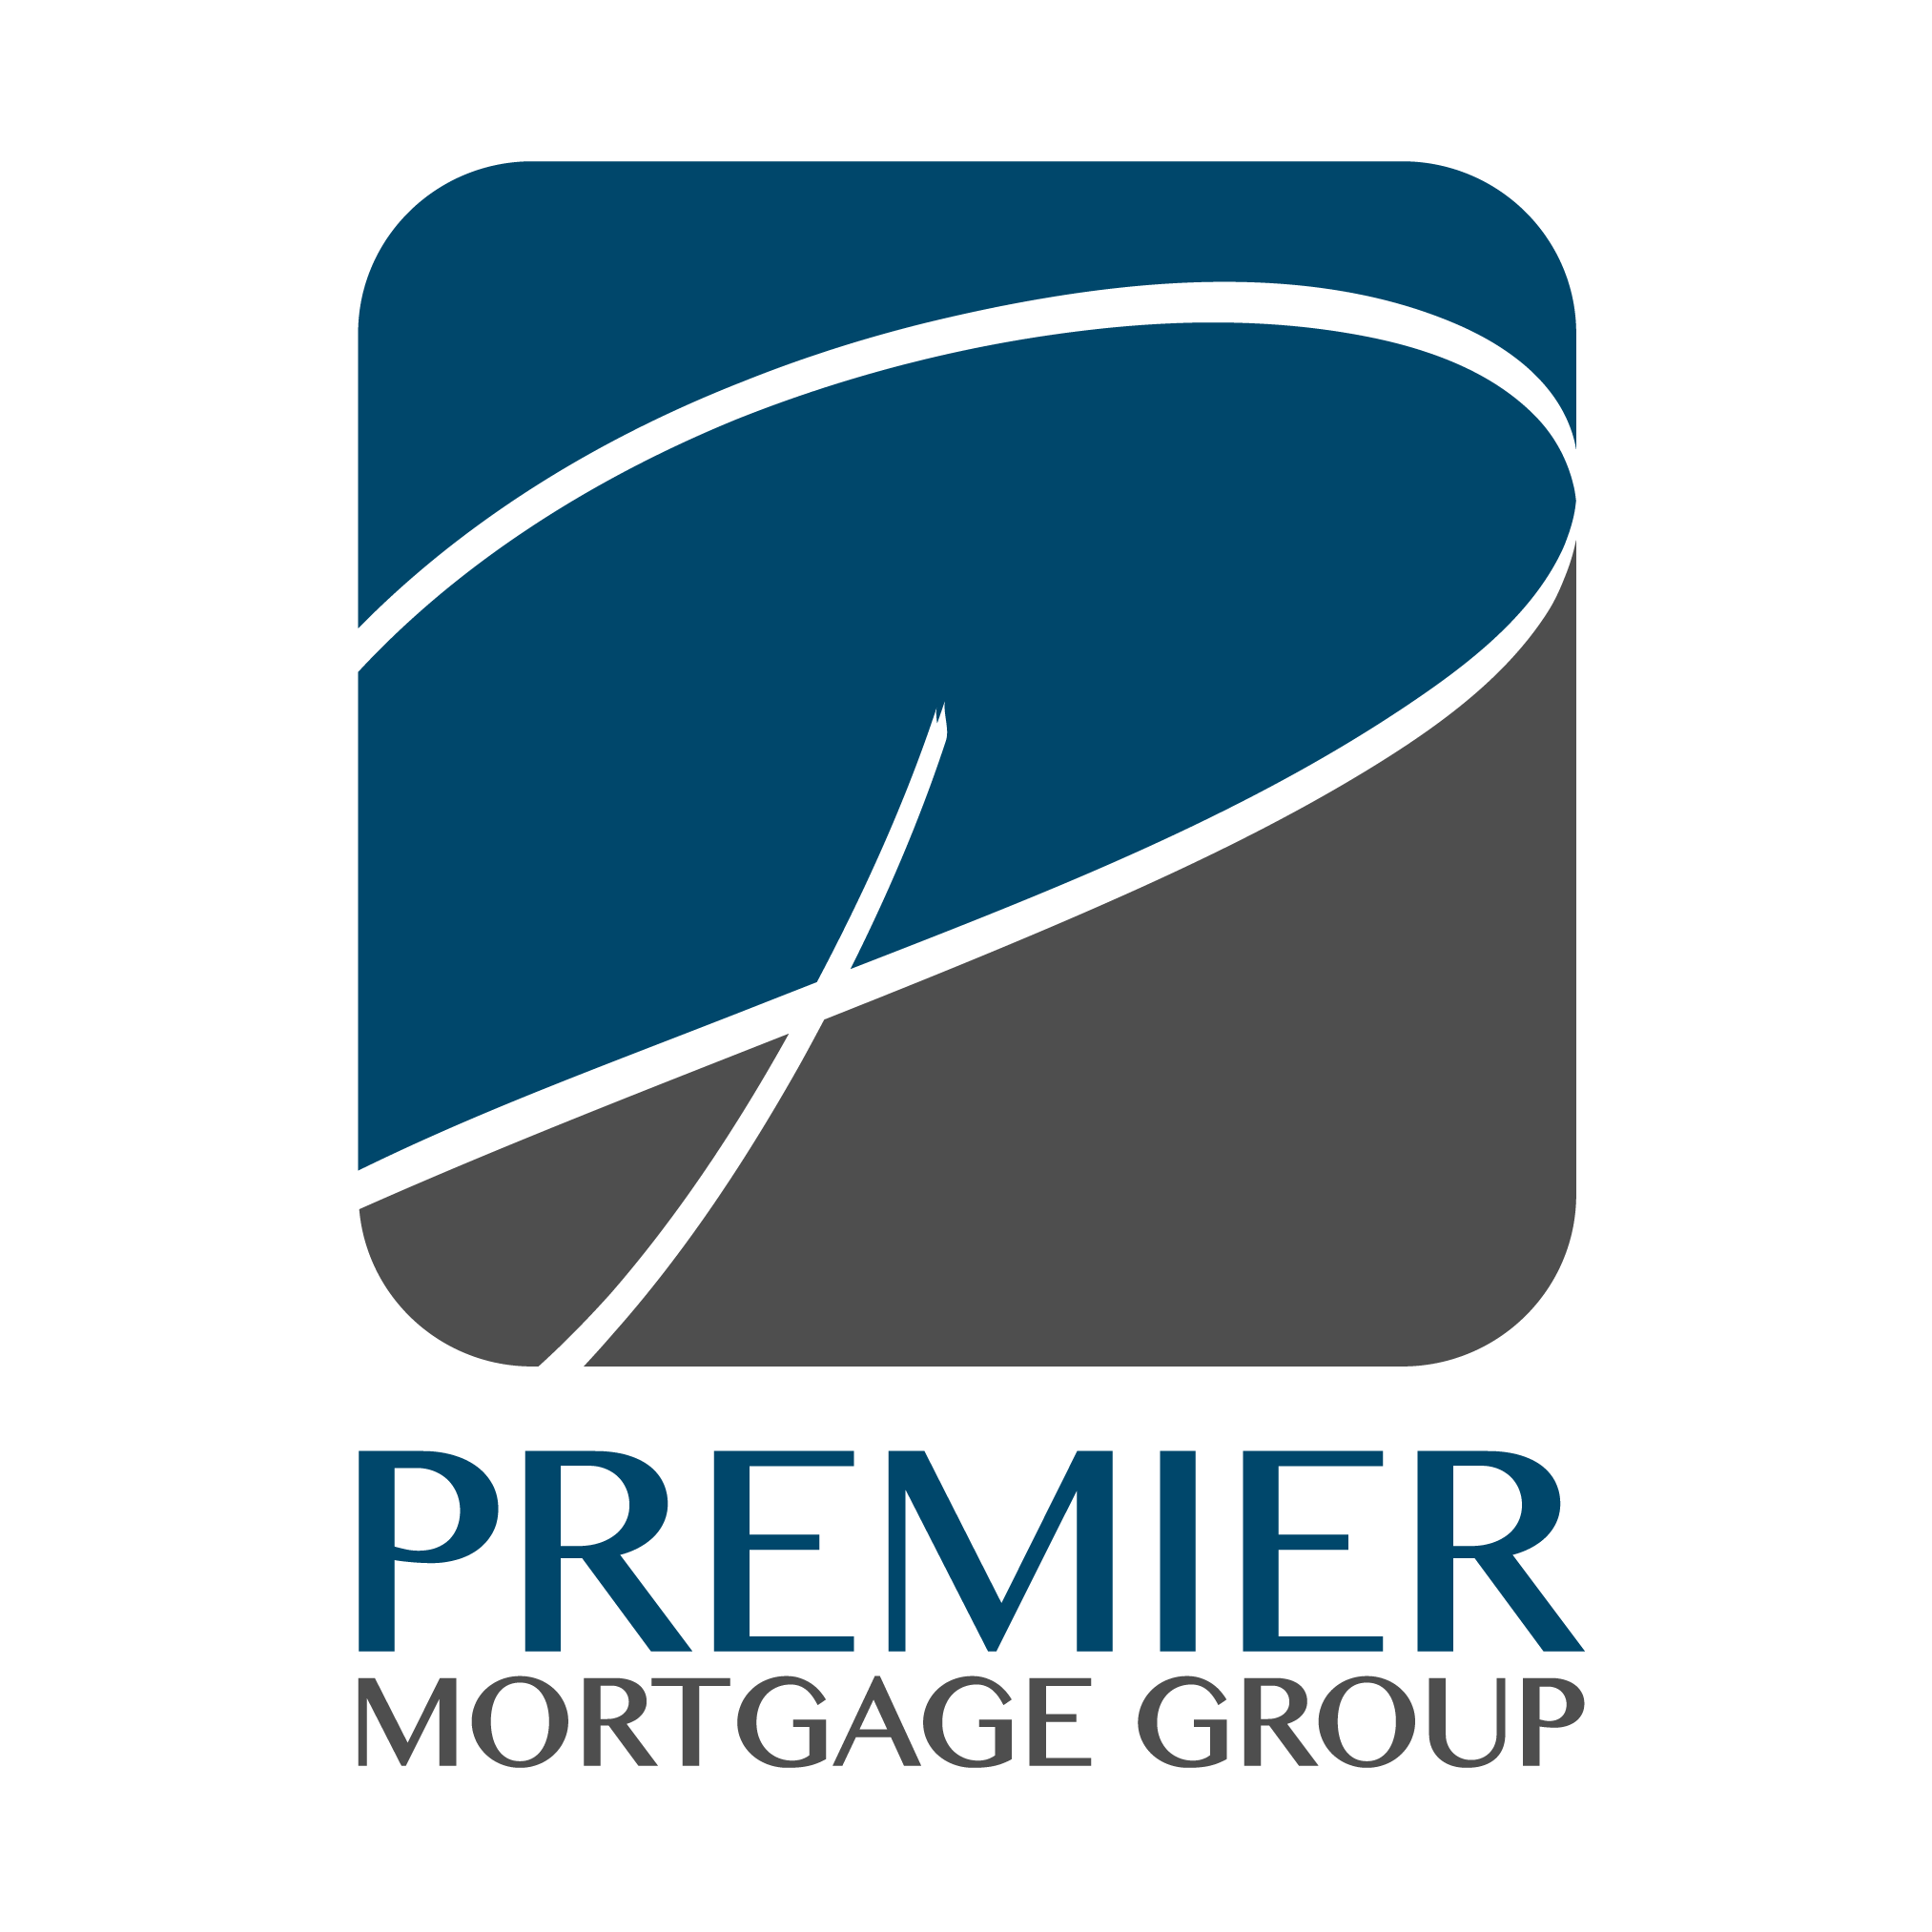 Premier Mortgage Group, Grant Hickman, NMLS #295341